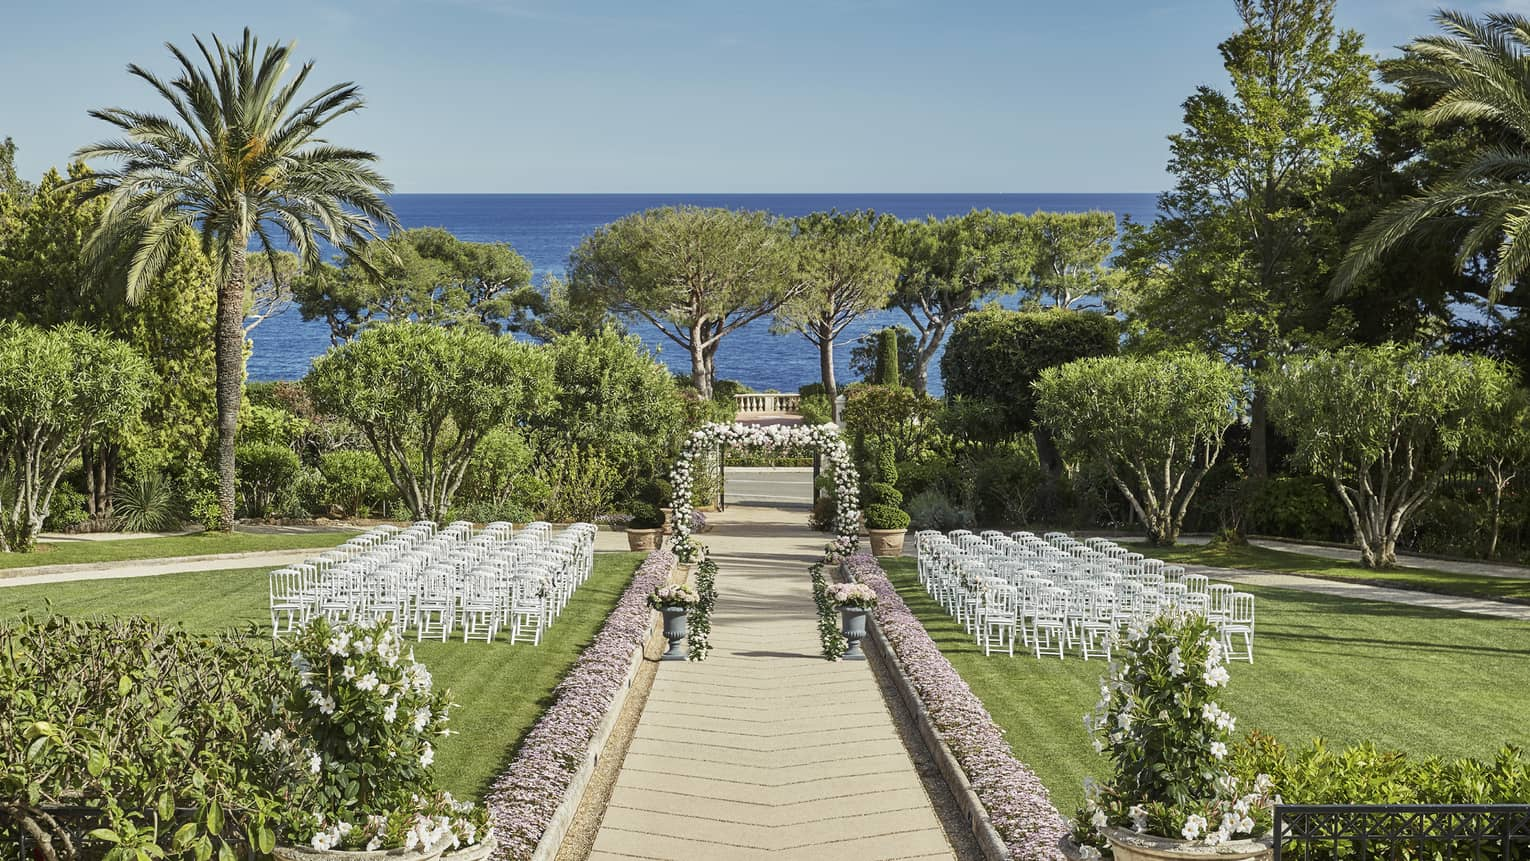 View down garden path to wedding altar with rows of white chairs on either side